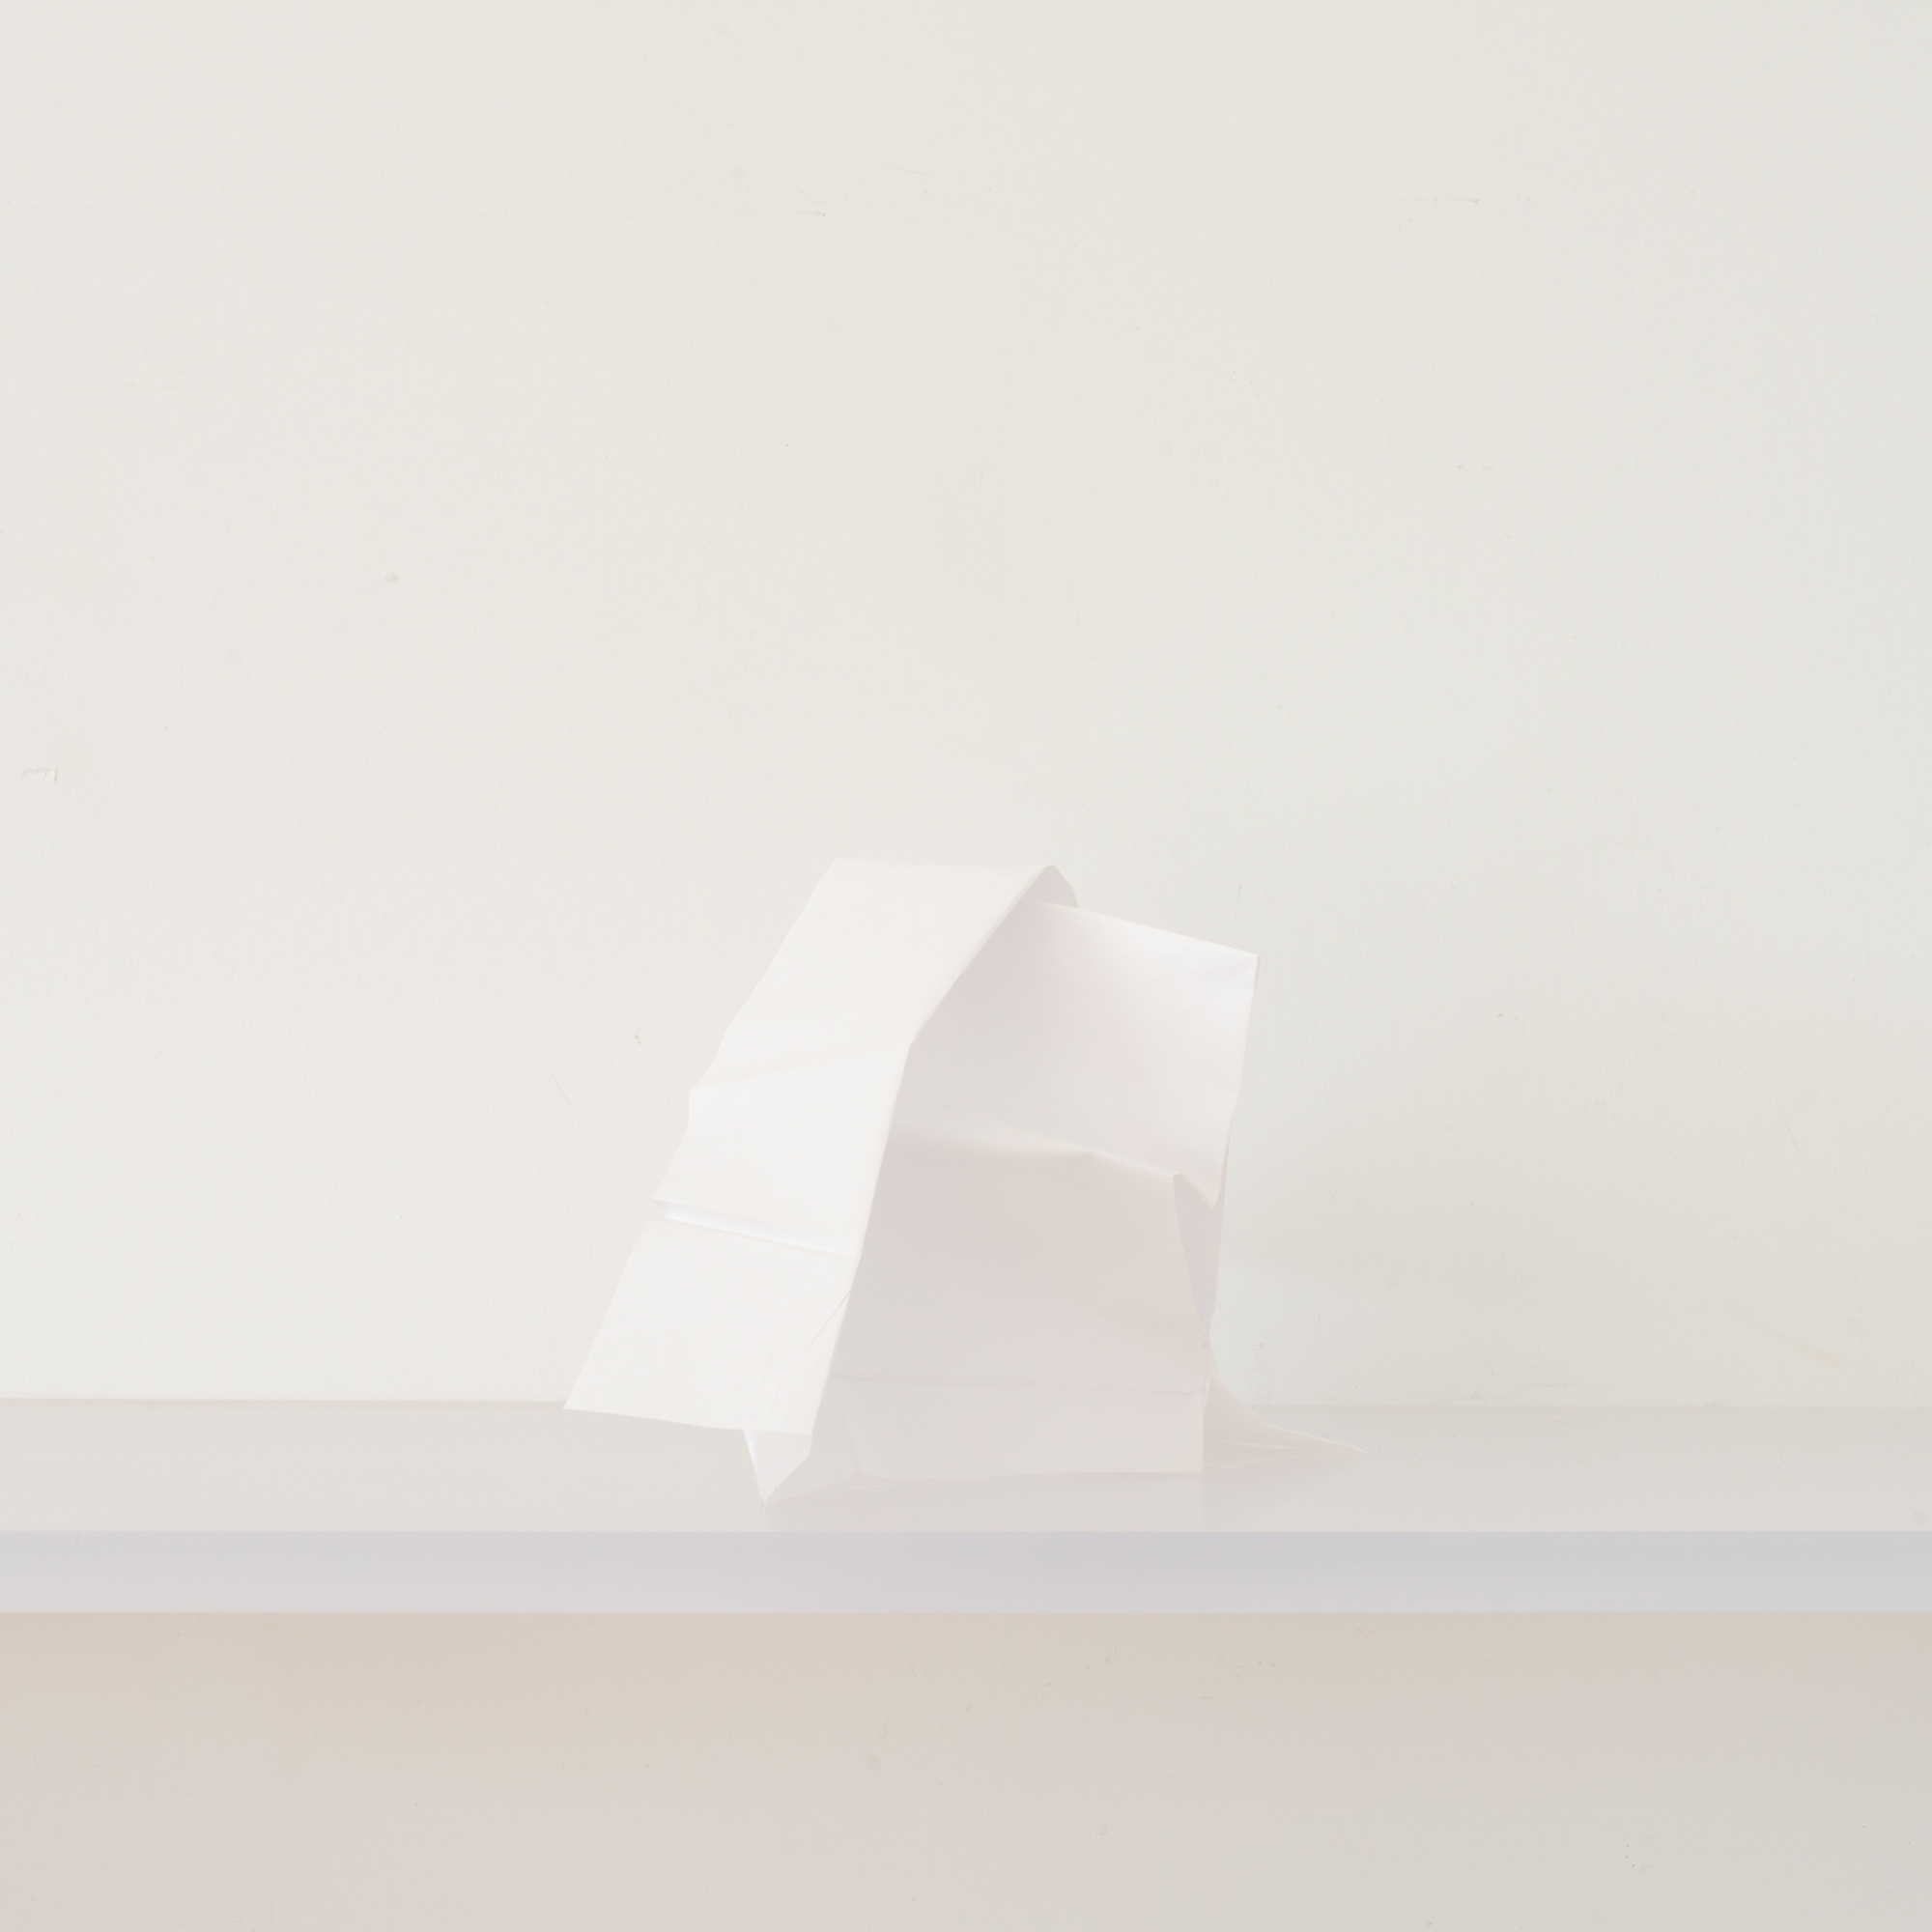 Bilow, White Paper Study No. 1, Untitled No. 5.jpg